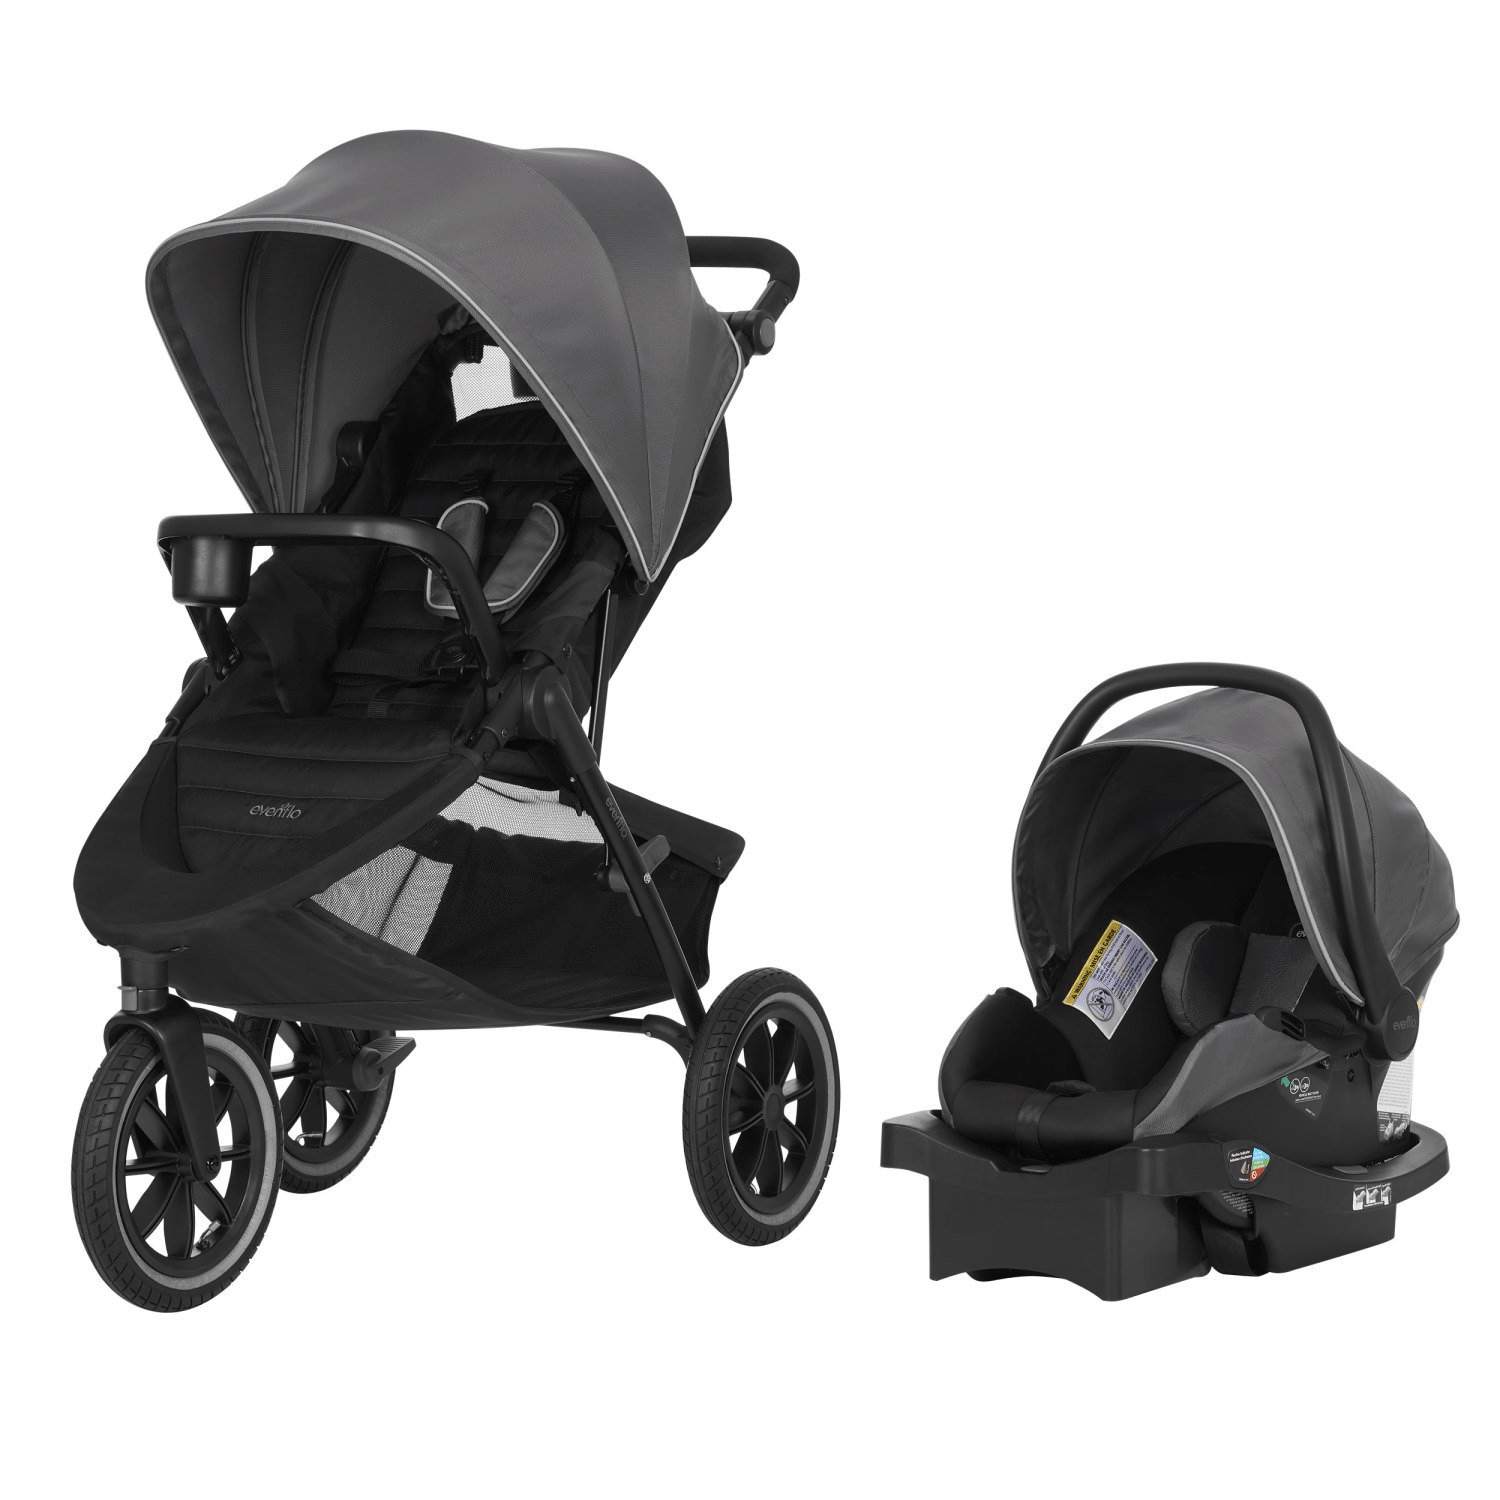 Which Baby Stroller Is The Best For My Baby In 2020?